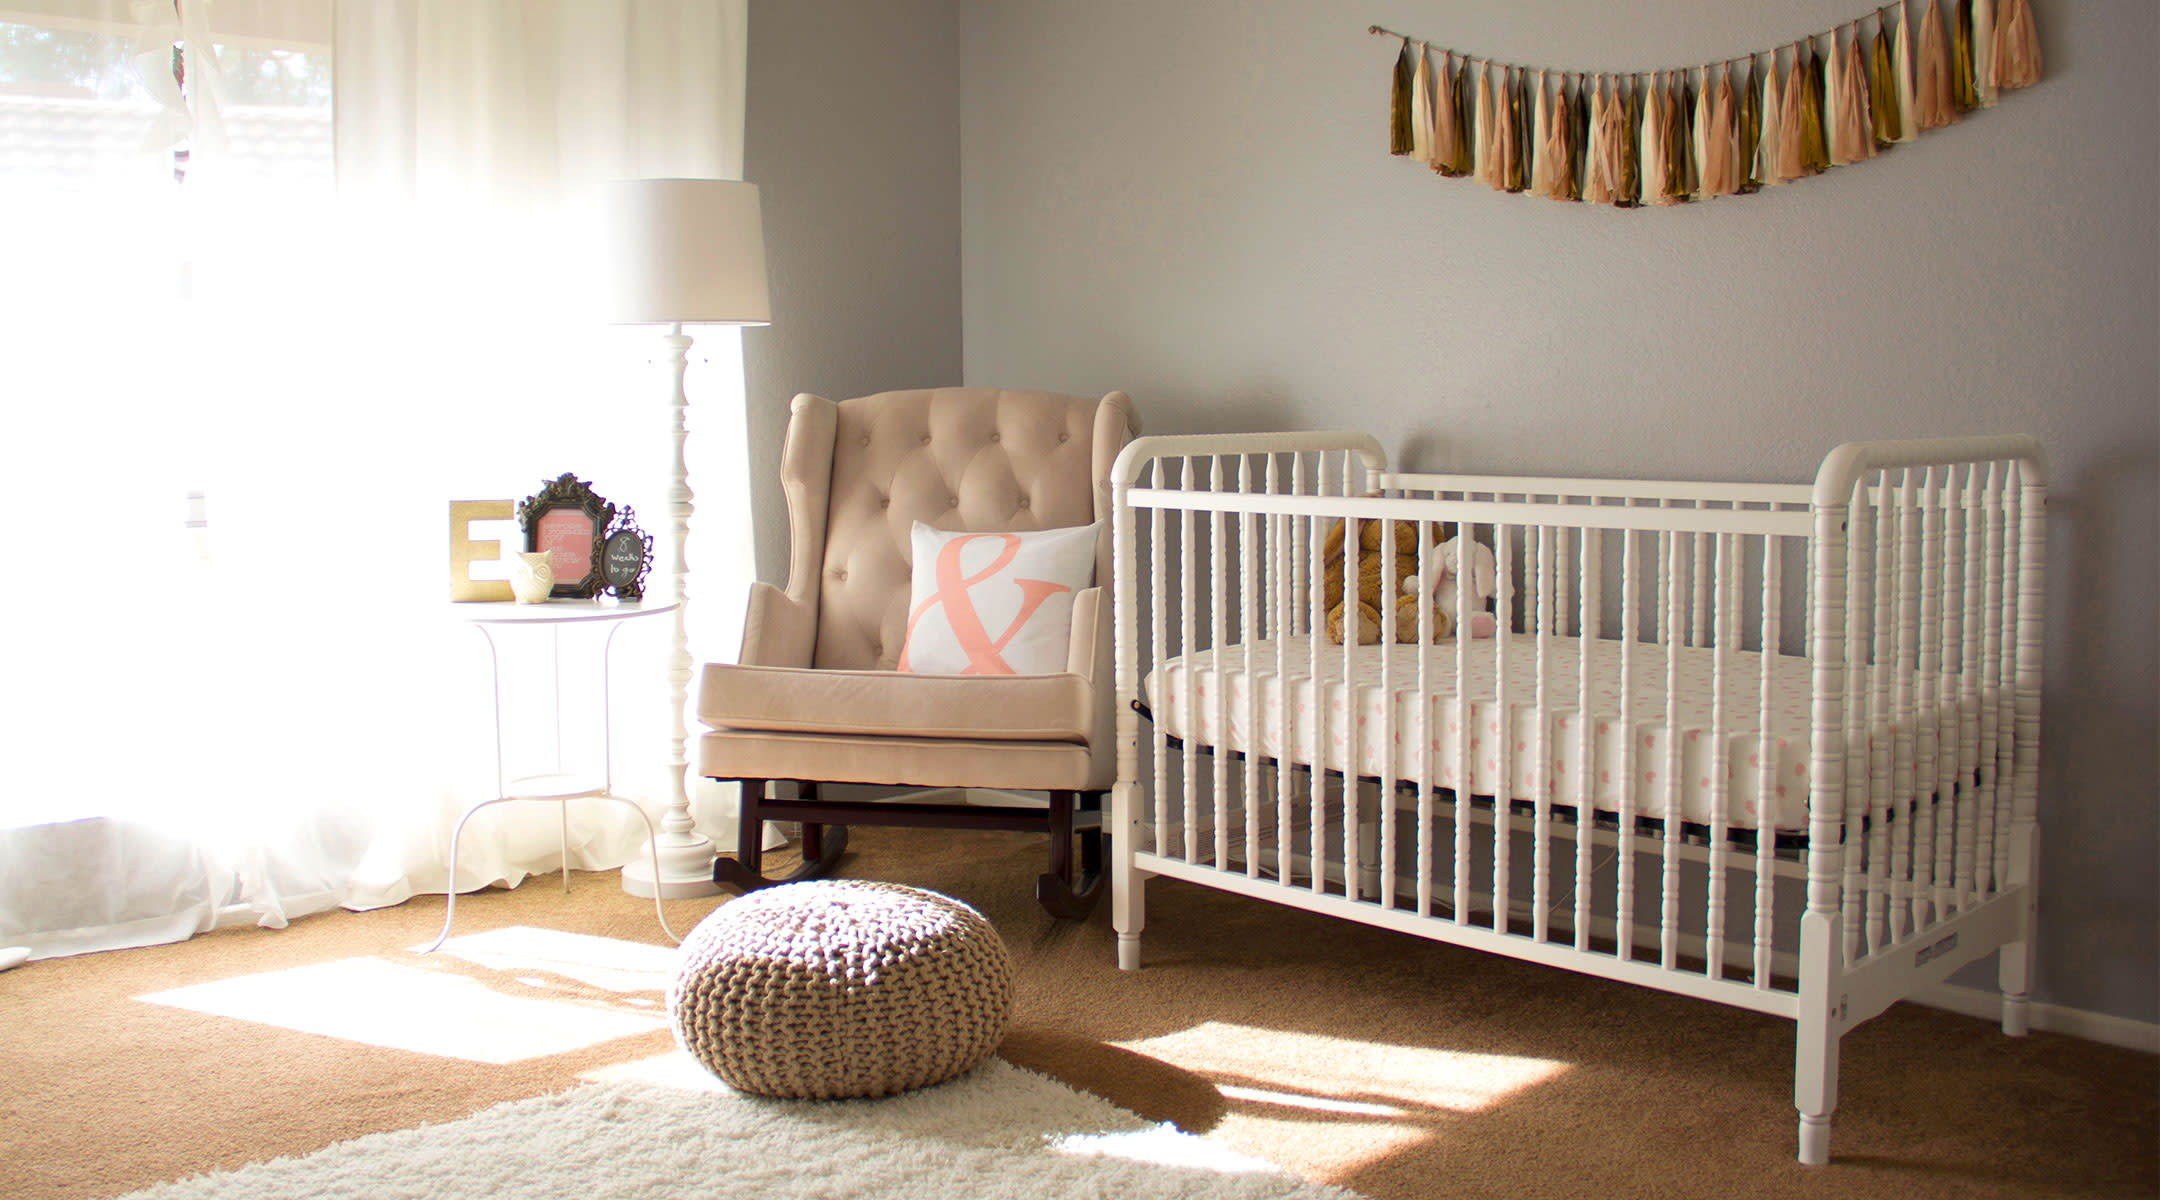 Tips For Decorating The Nursery